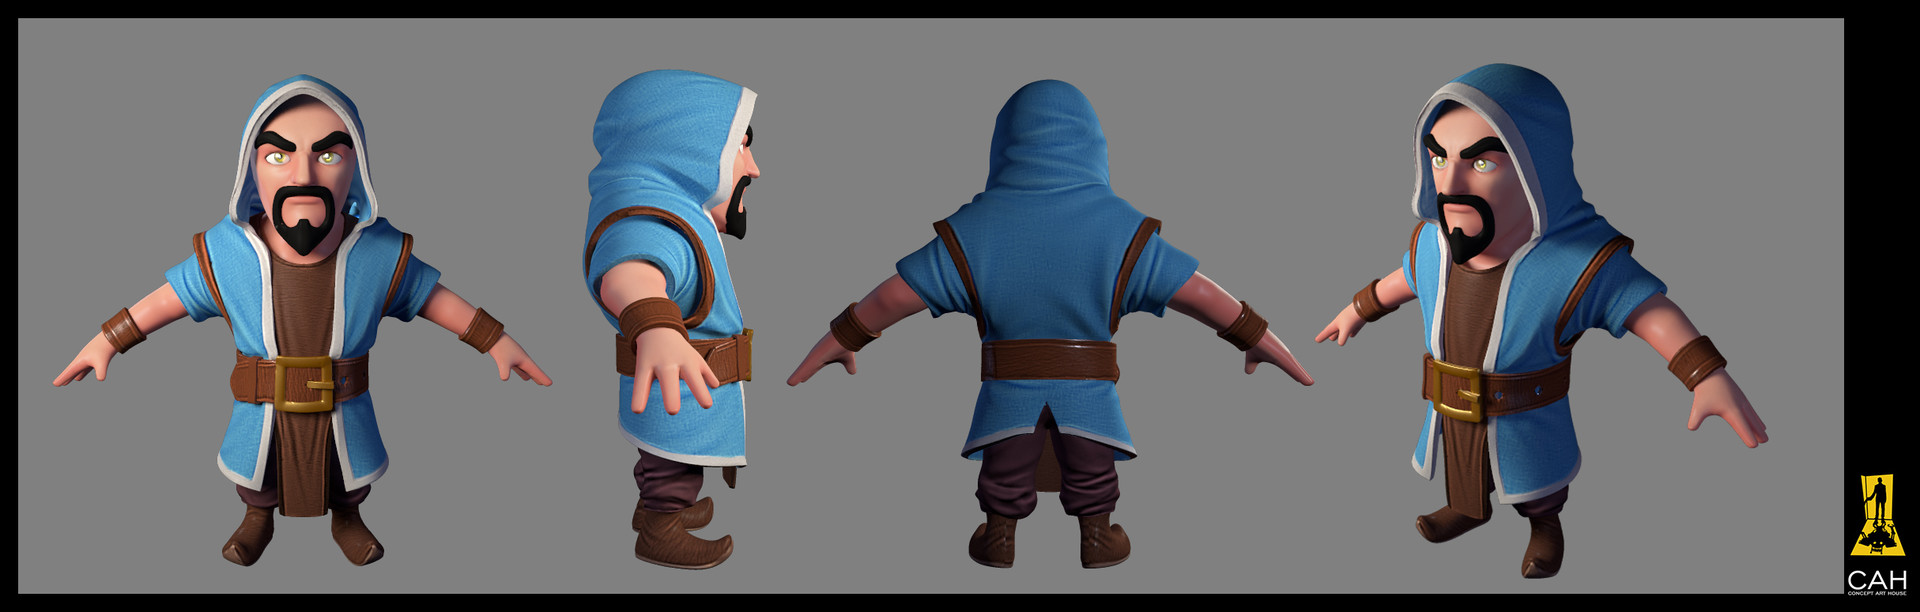 Artstation 3d models for clash of clans super bowl commercial wizard view publicscrutiny Image collections